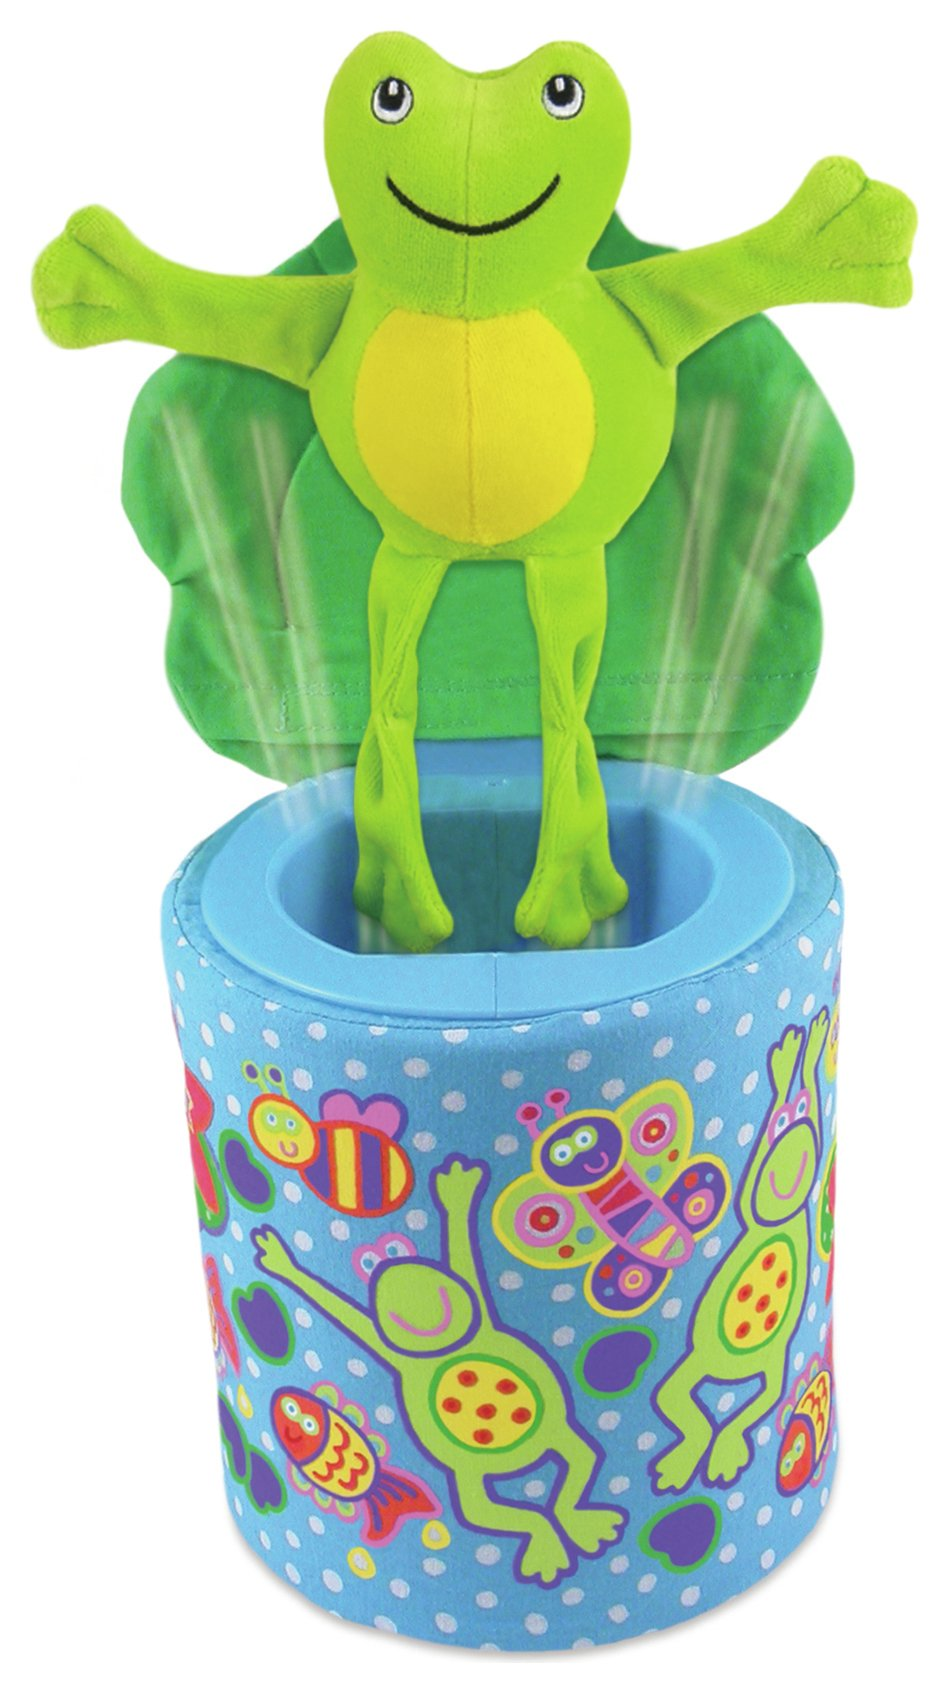 Galt Toys - Frog in a Box from galt toys